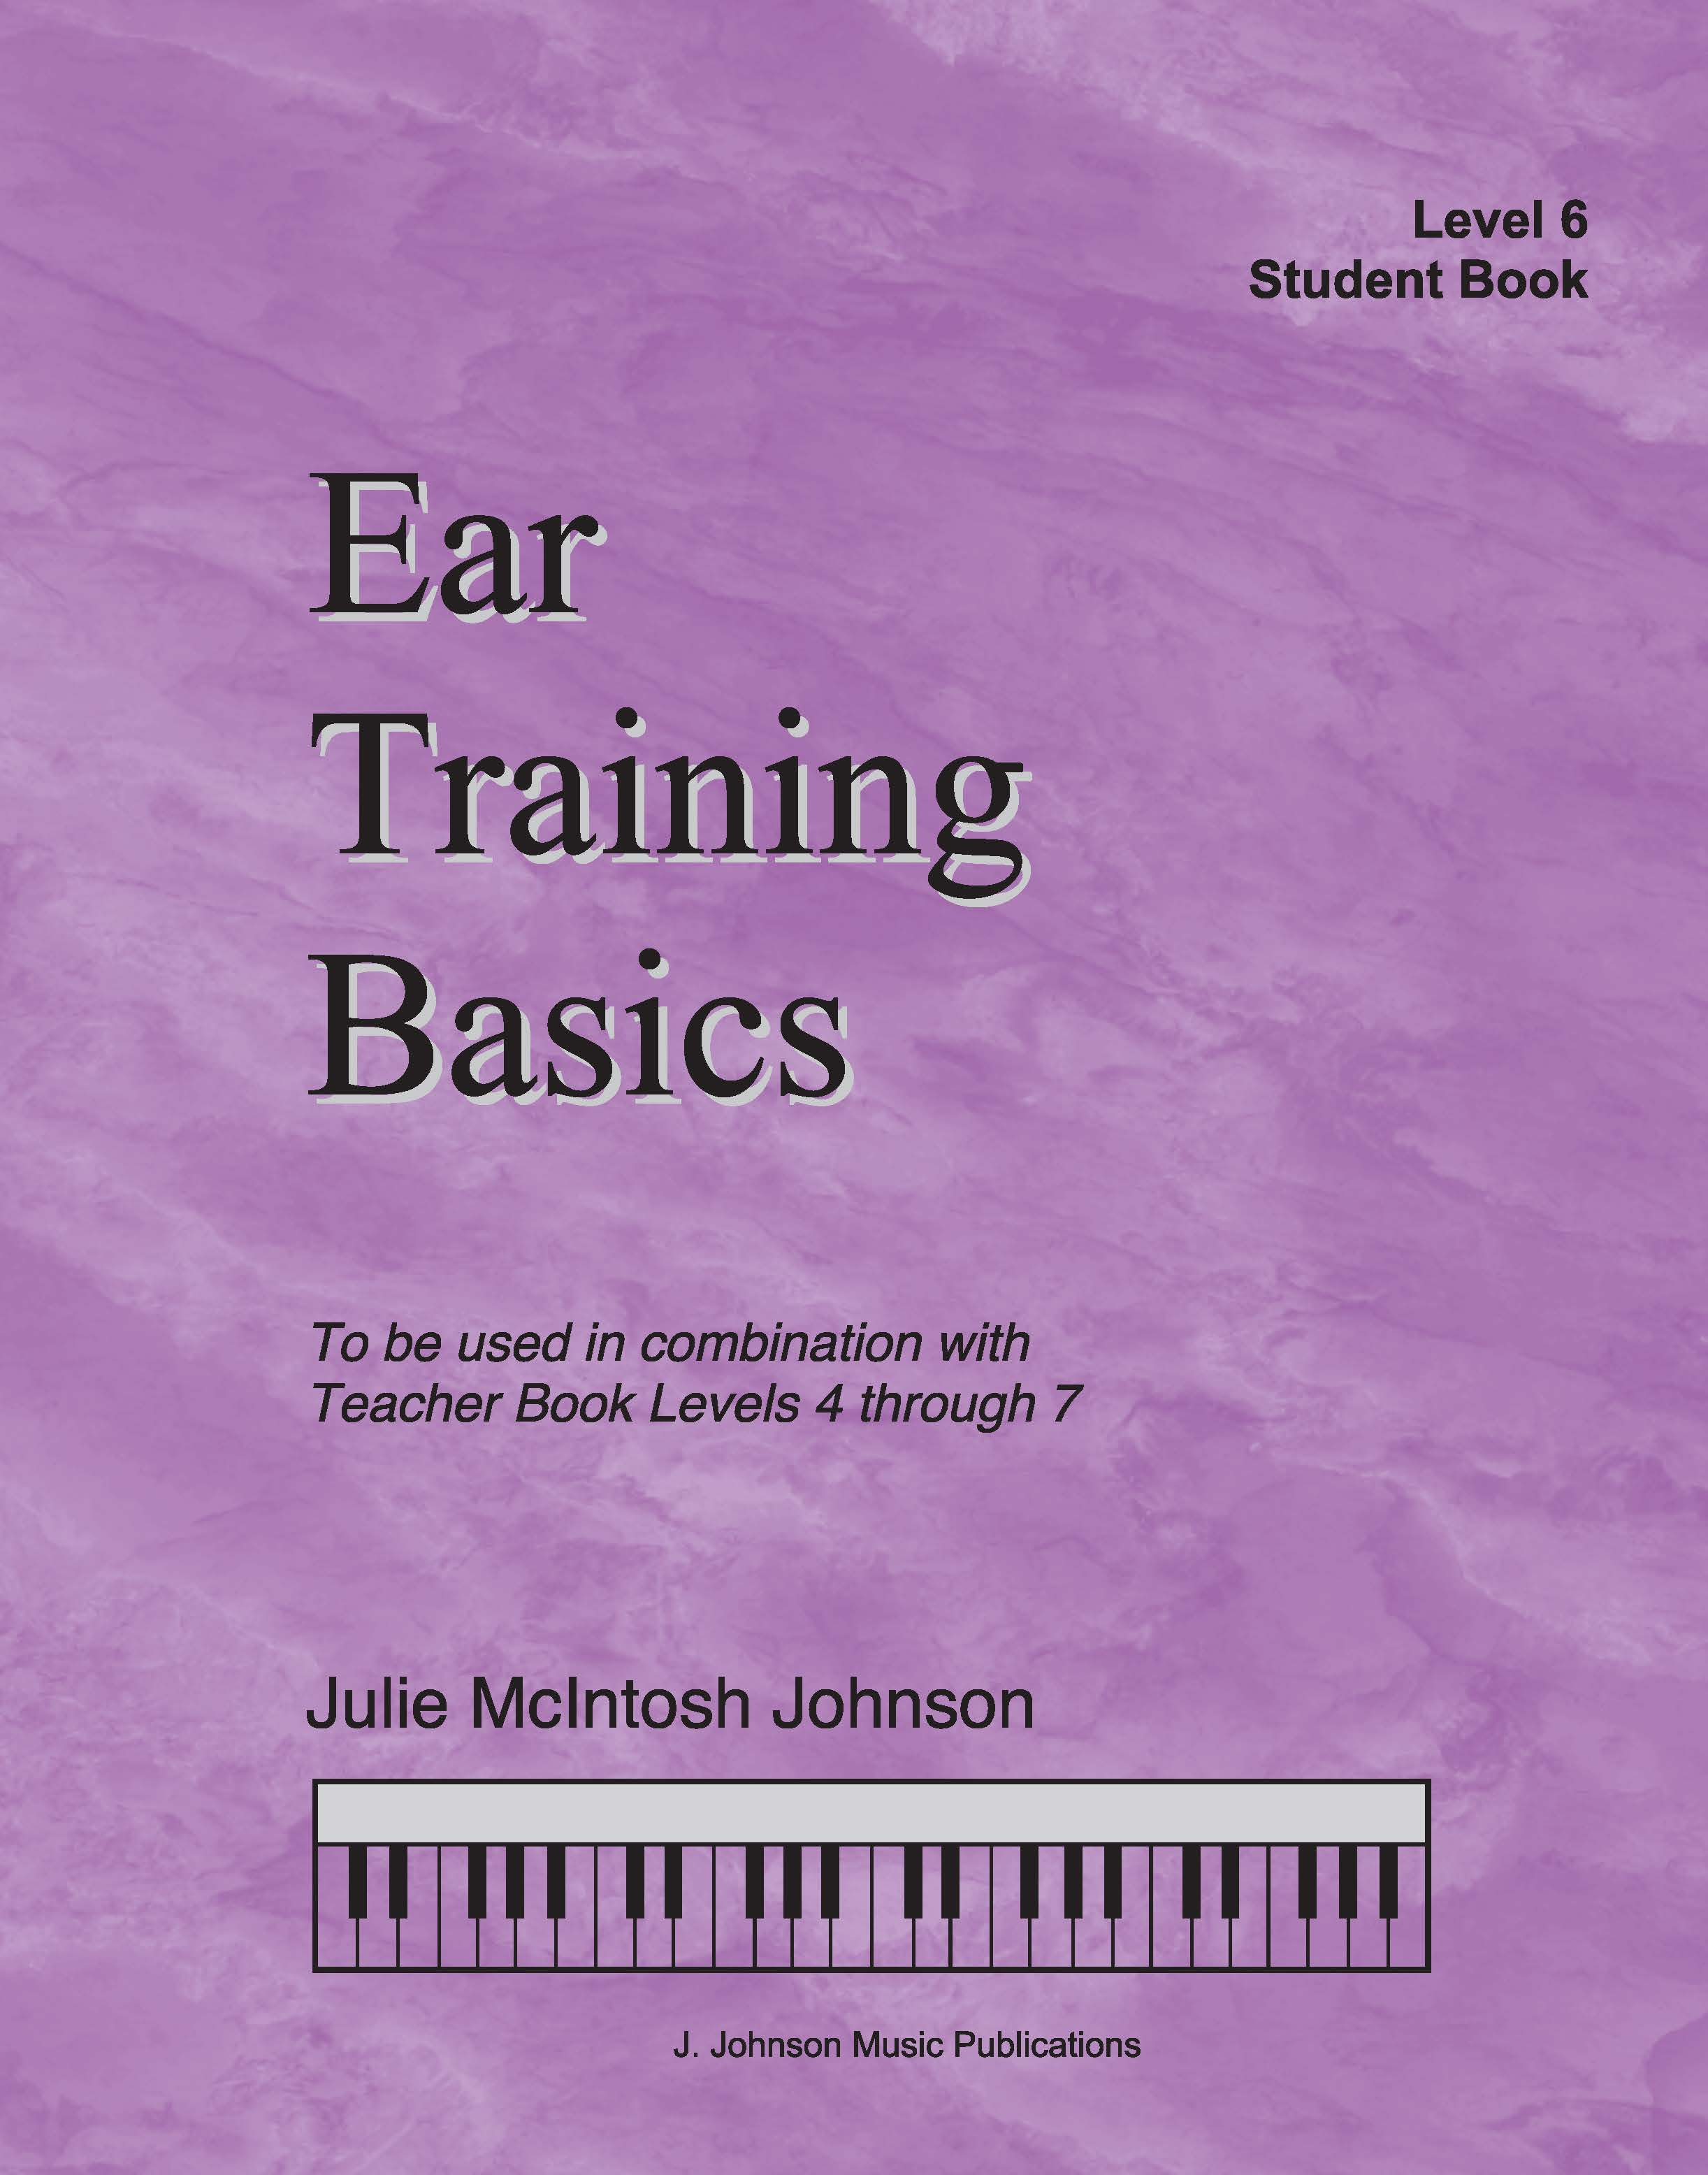 Ear Training Basics Level 6